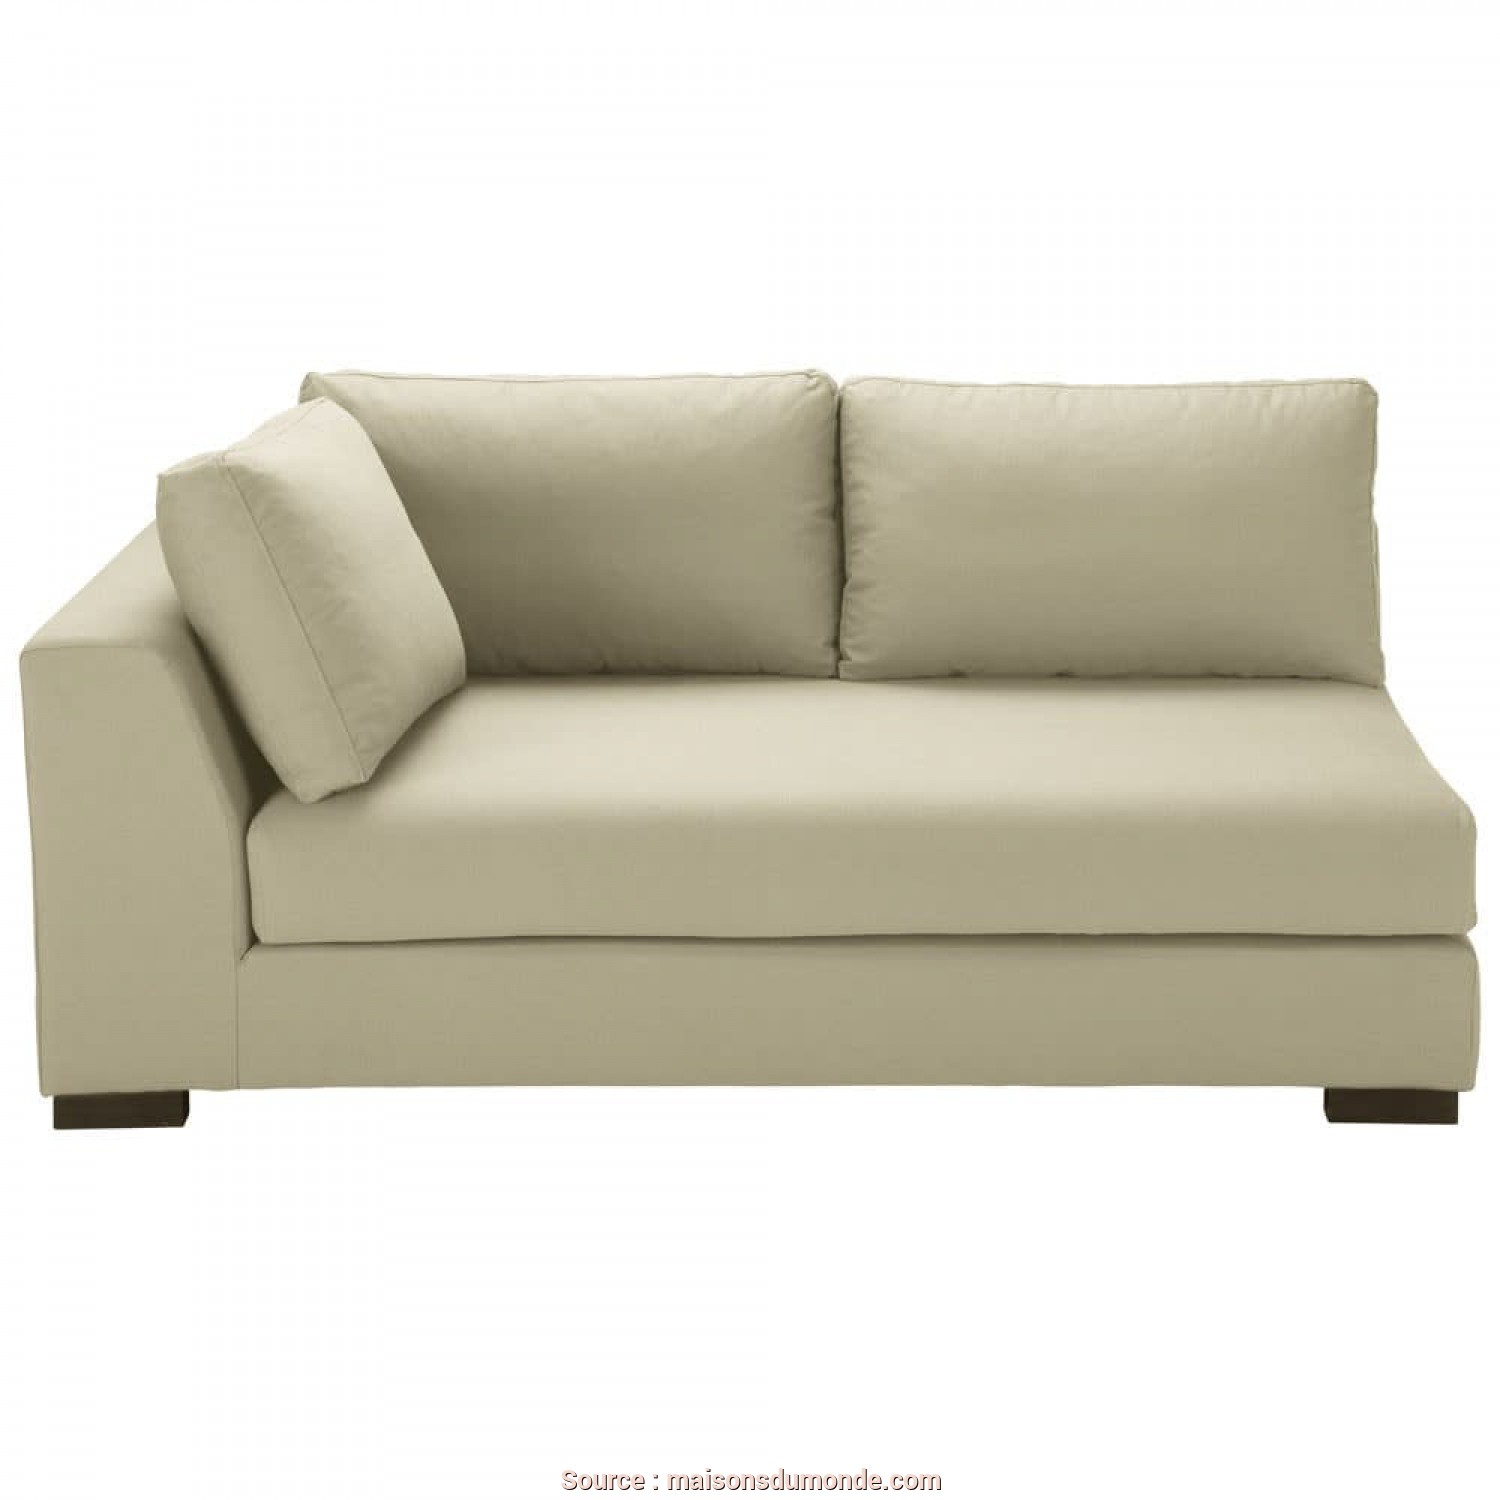 Divano Terence Maison Du Monde, Freddo Putty-Coloured Cotton Modular Sofa, Left Armrest Terence